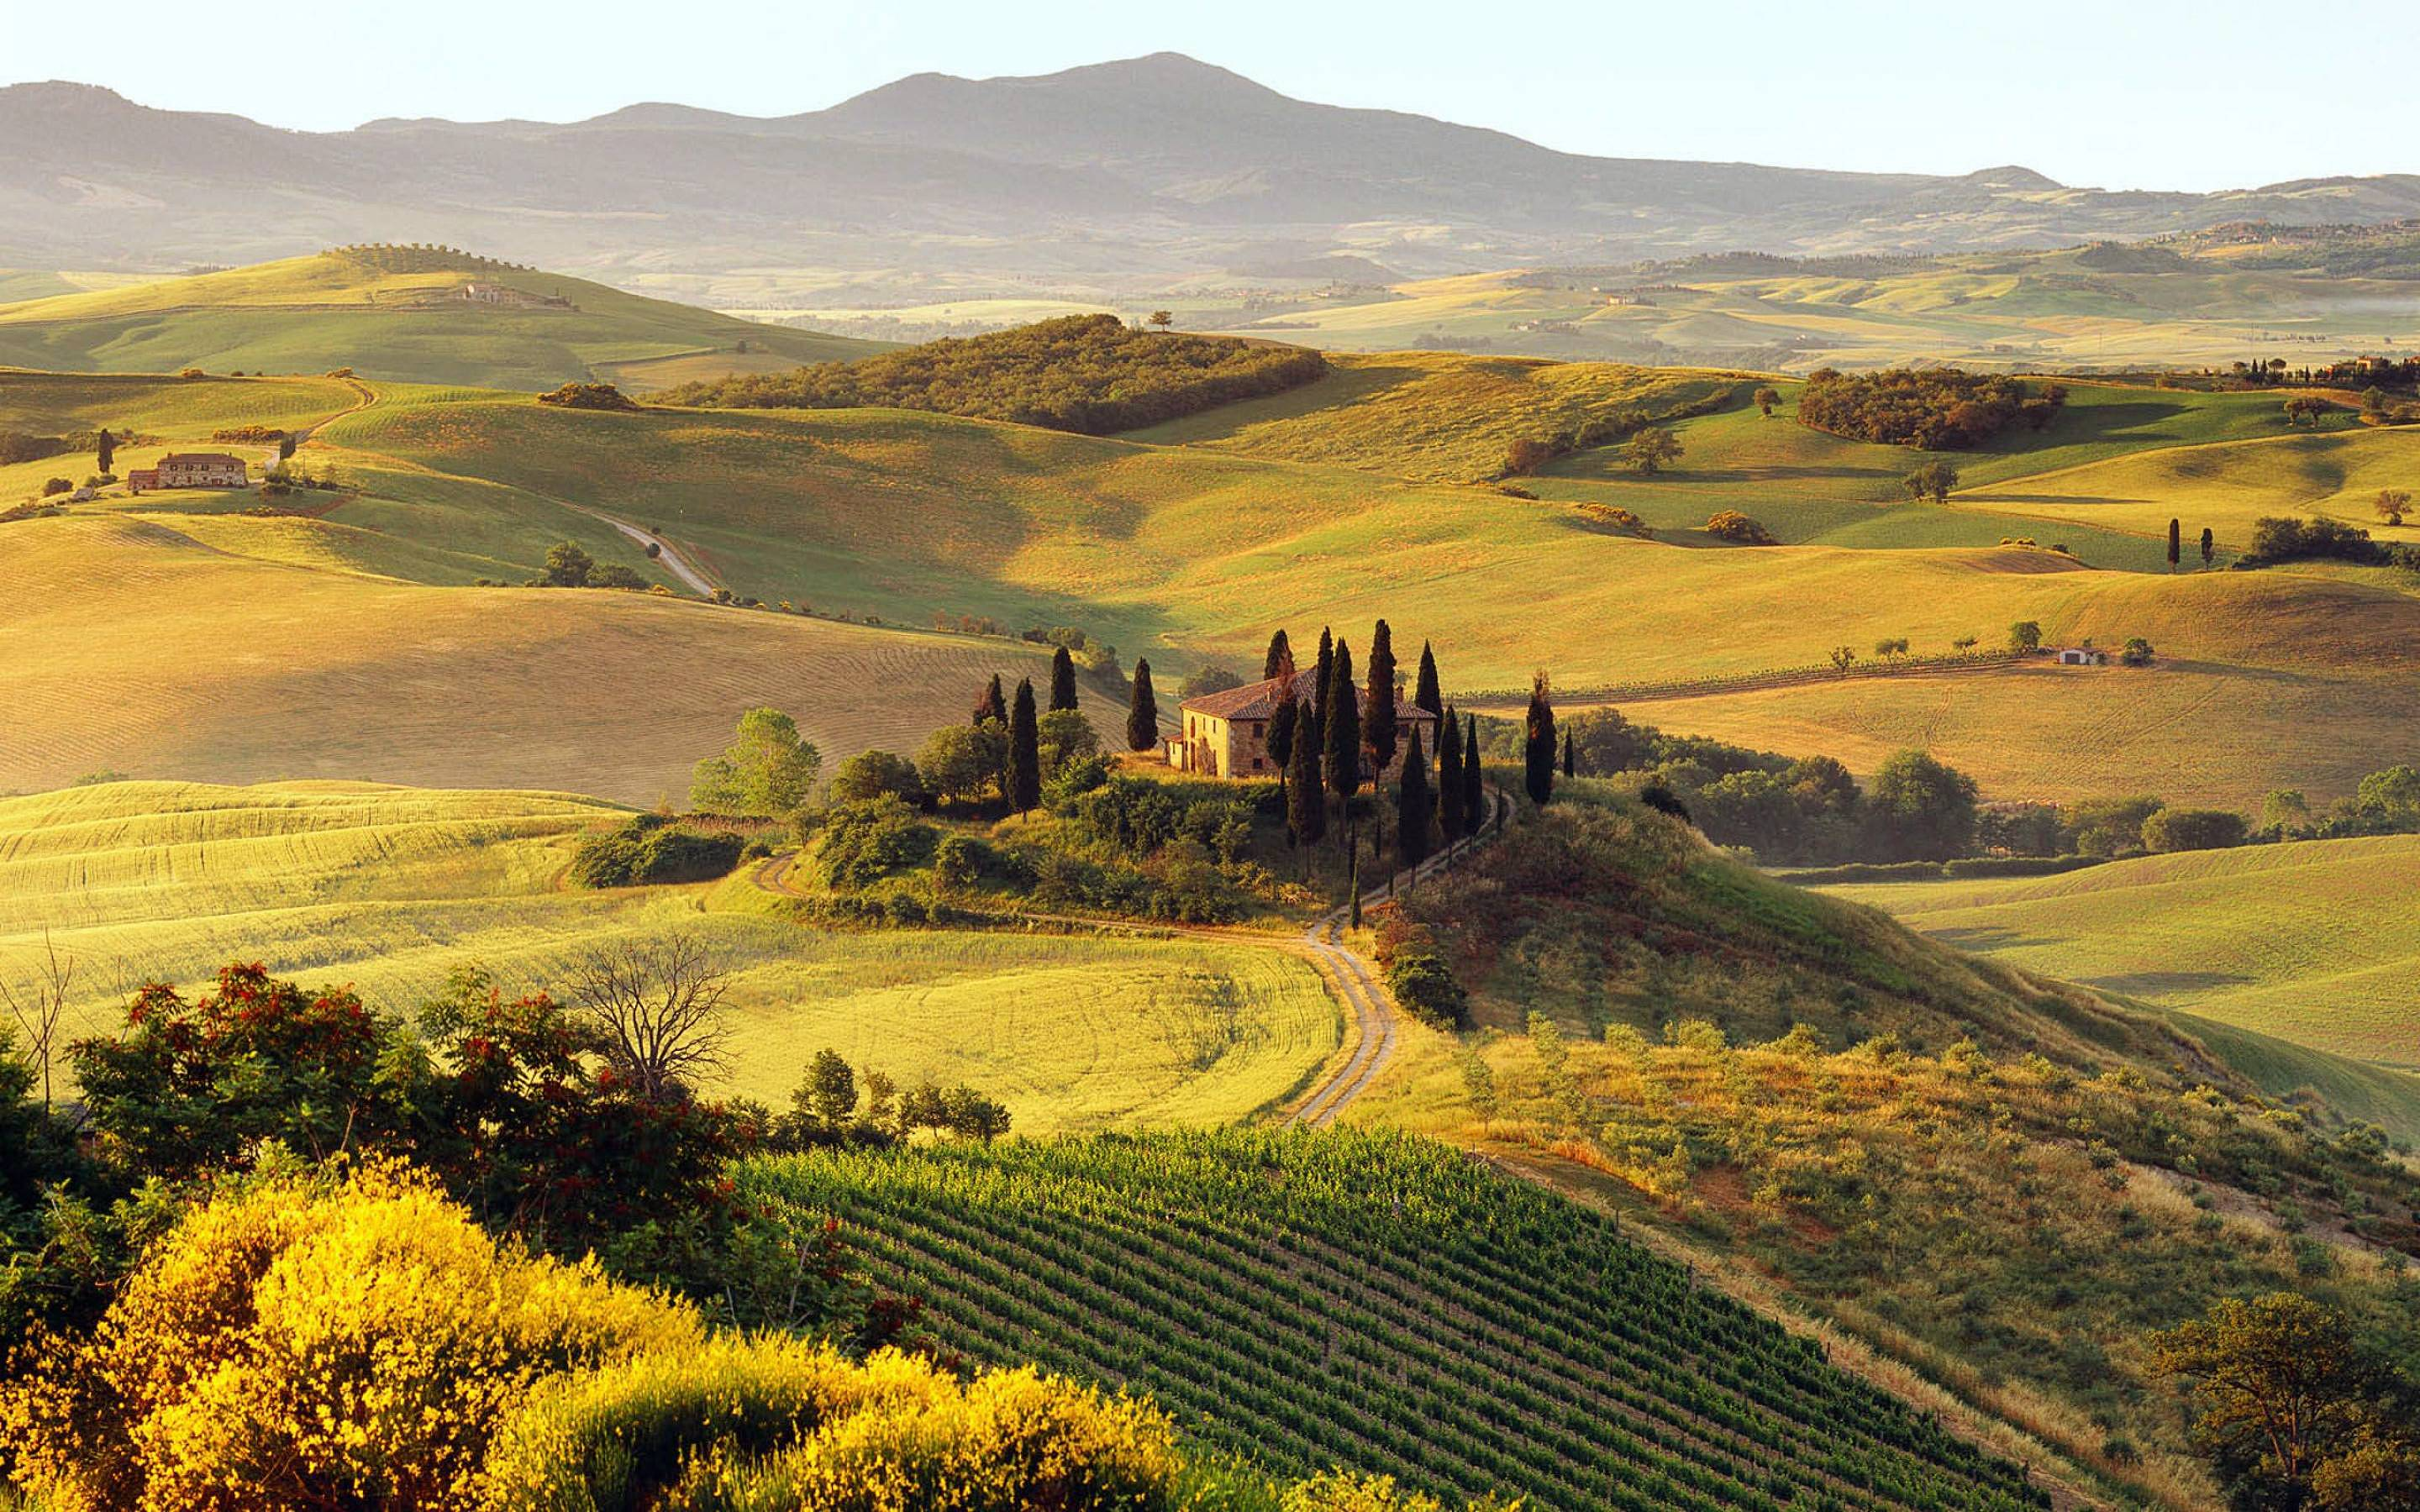 Daily Wallpaper: Tuscany, Italy | I Like To Waste My Time